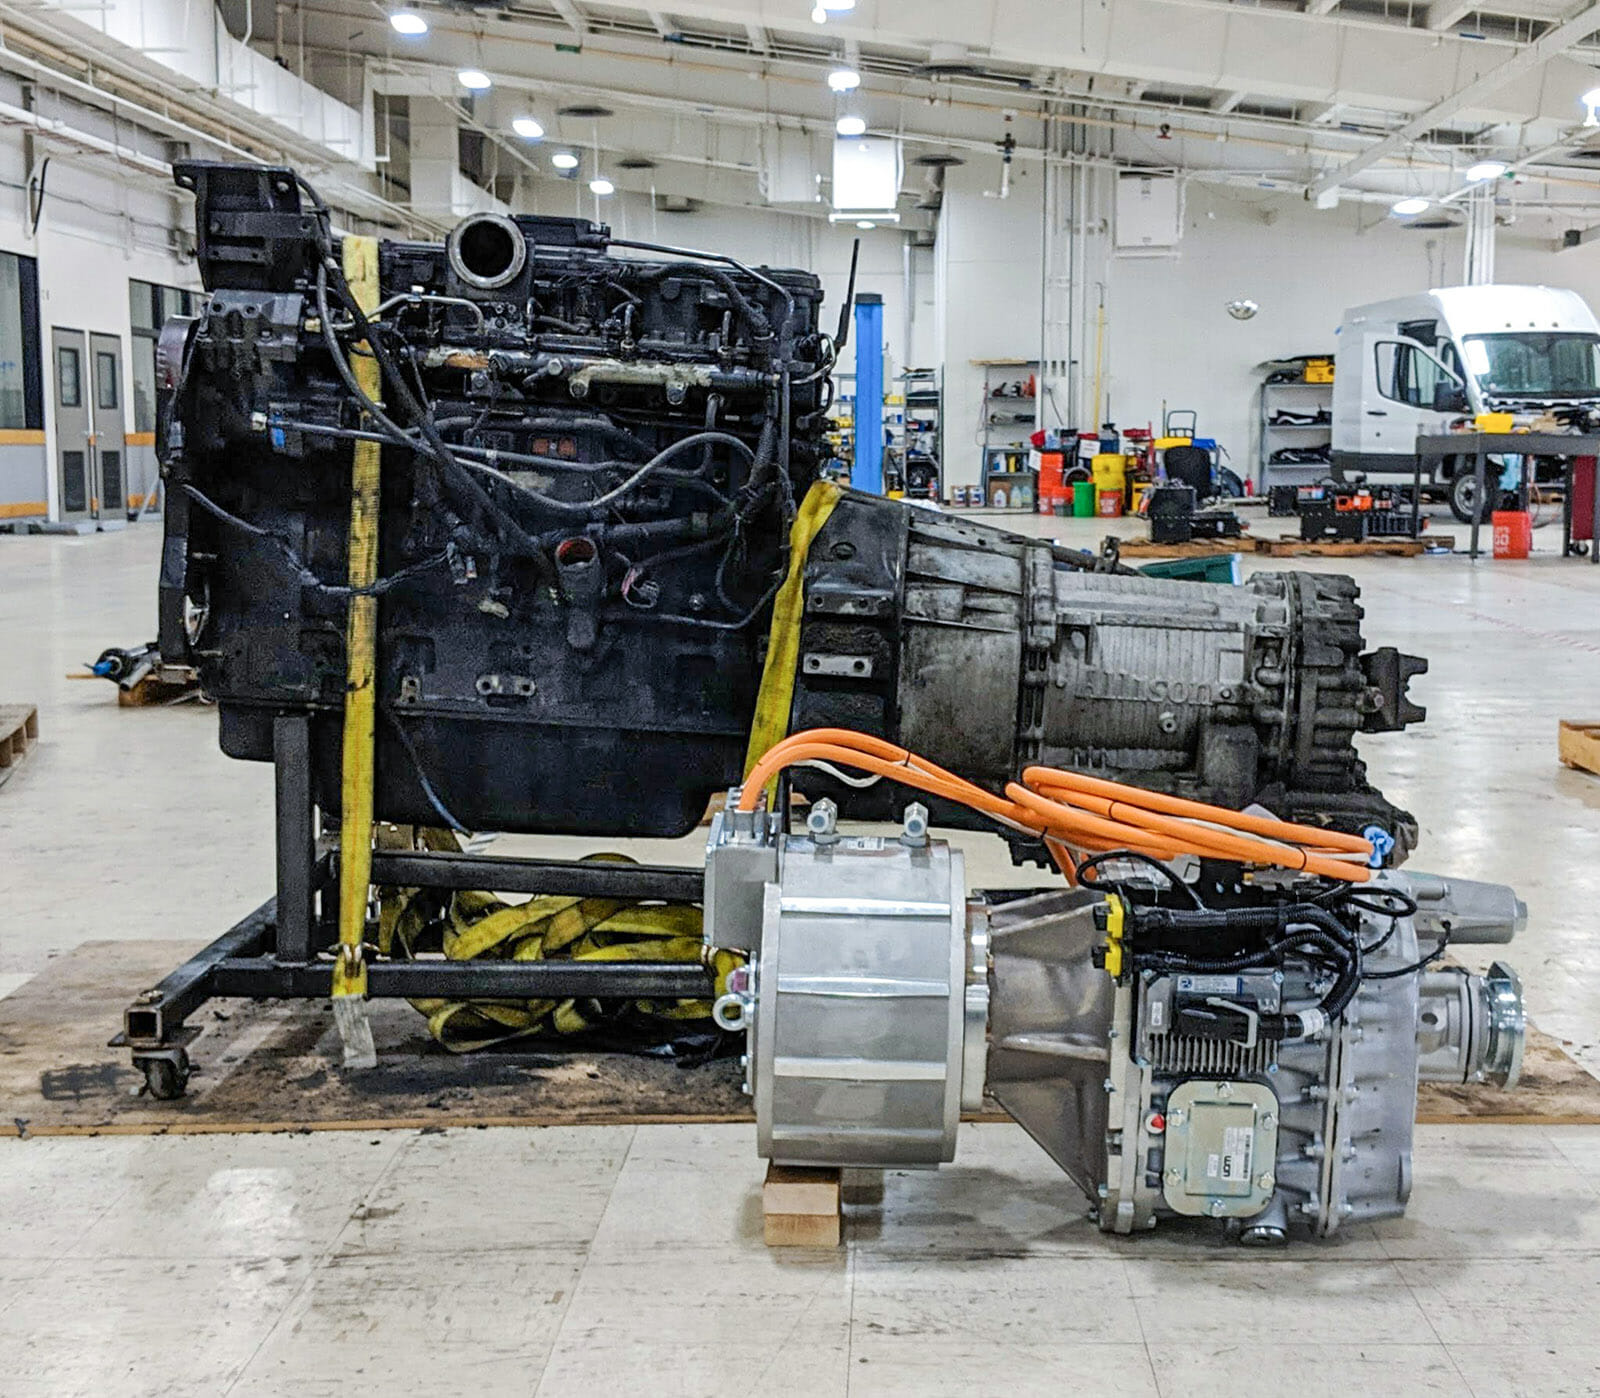 Diesel engine replaced with electric motor